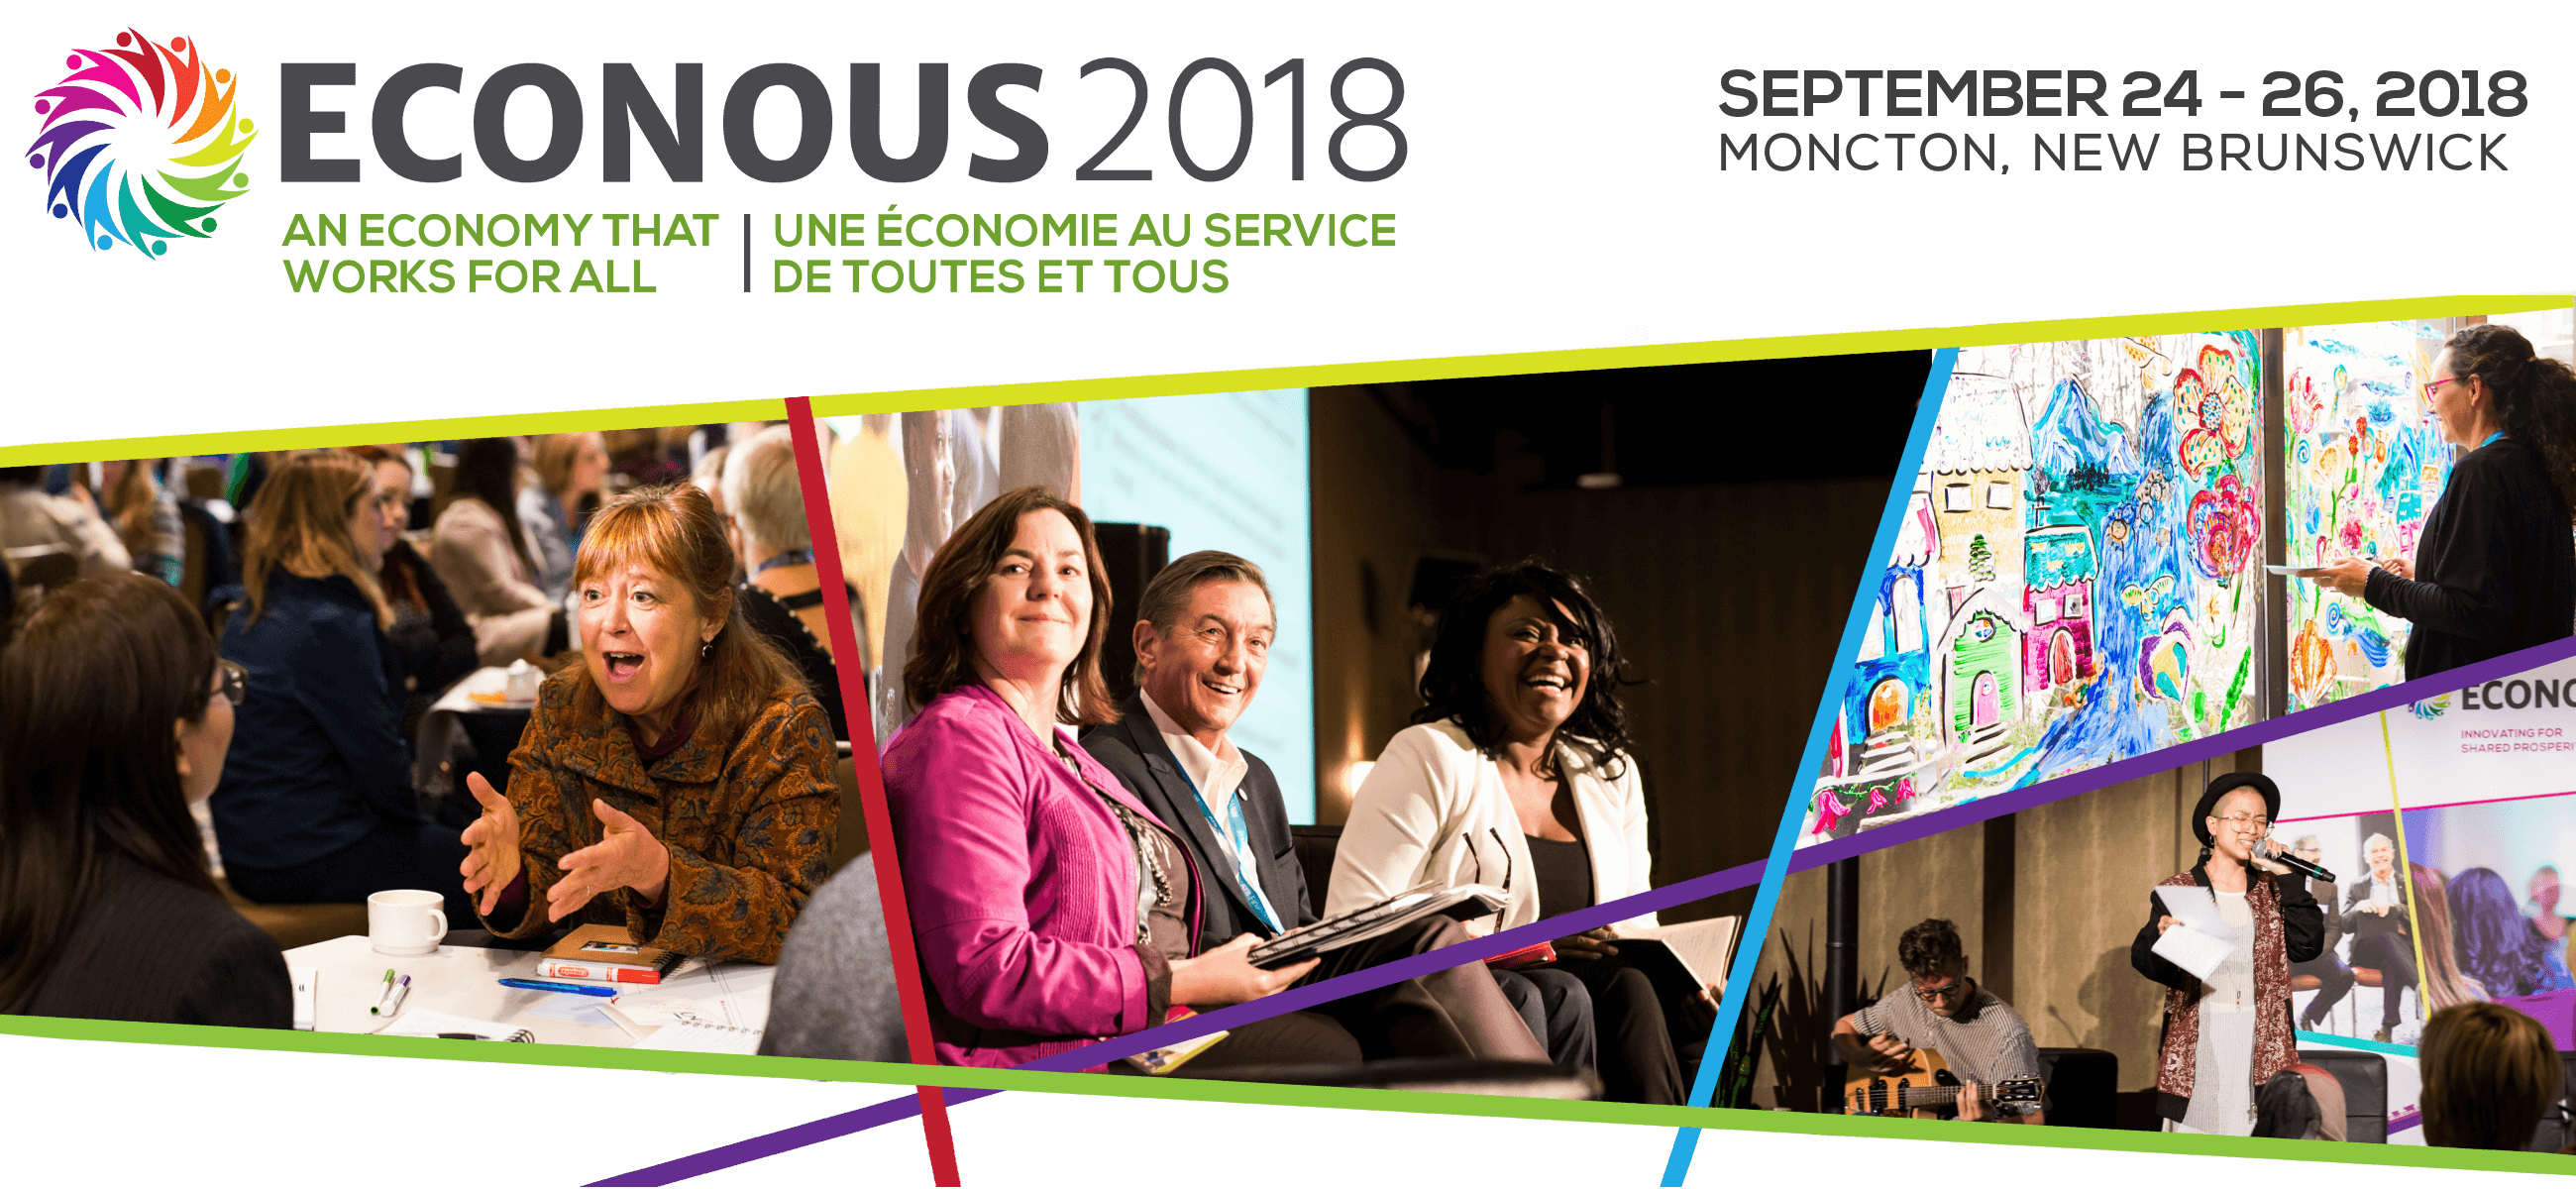 ECONOUS2018: An Economy that Works for All (September 24-26, 2017, Moncton, NB)